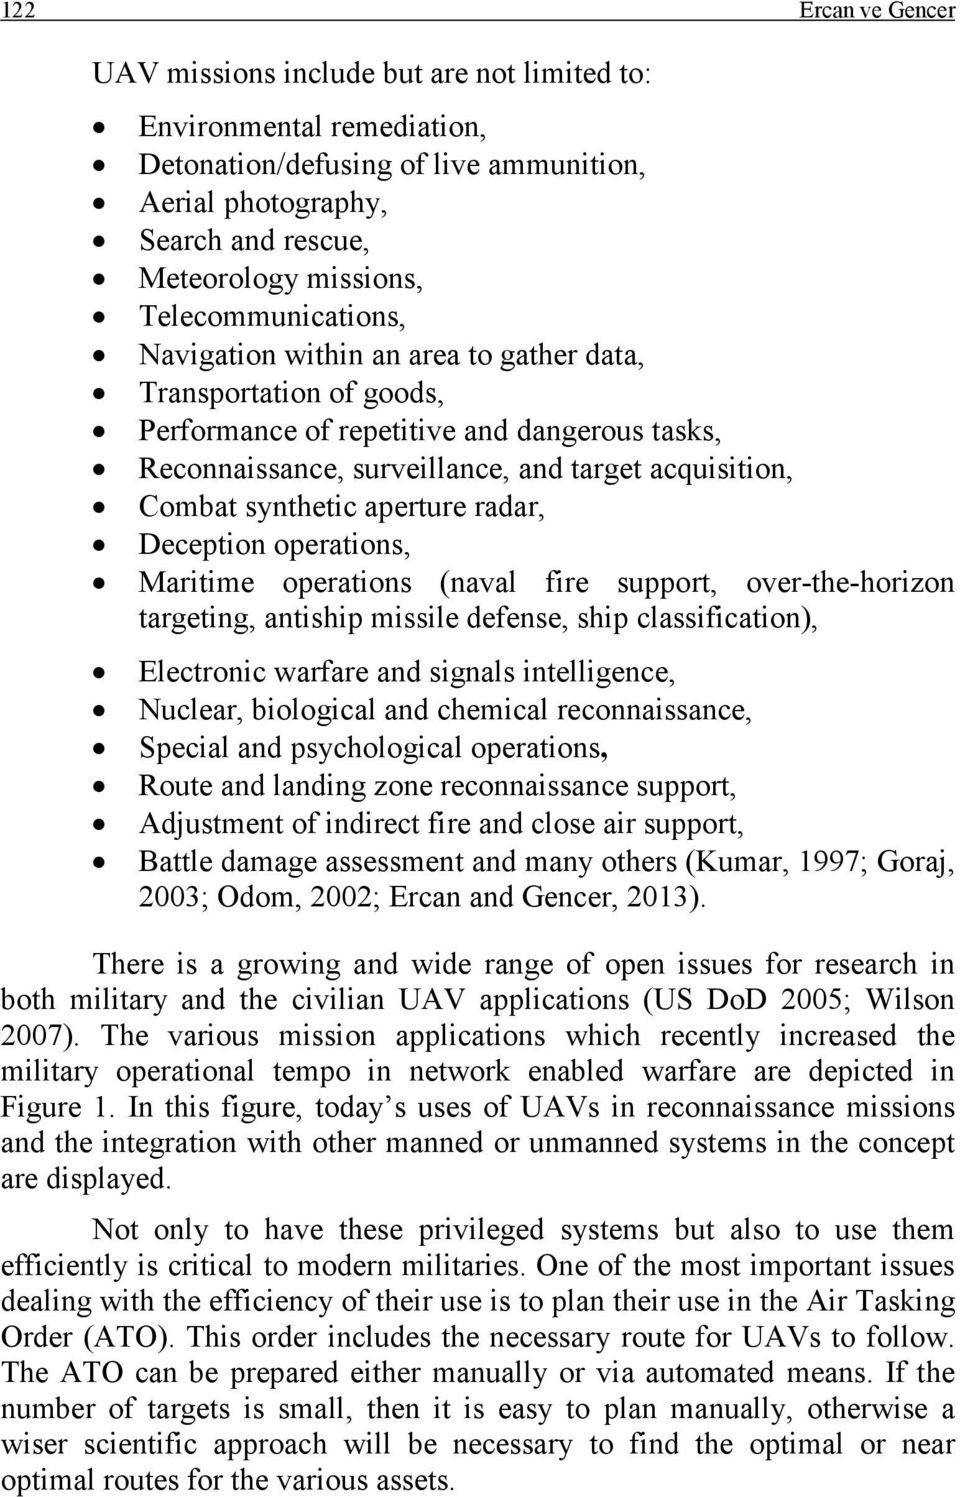 synthetic aperture radar, Deception operations, Maritime operations (naval fire support, over-the-horizon targeting, antiship missile defense, ship classification), Electronic warfare and signals